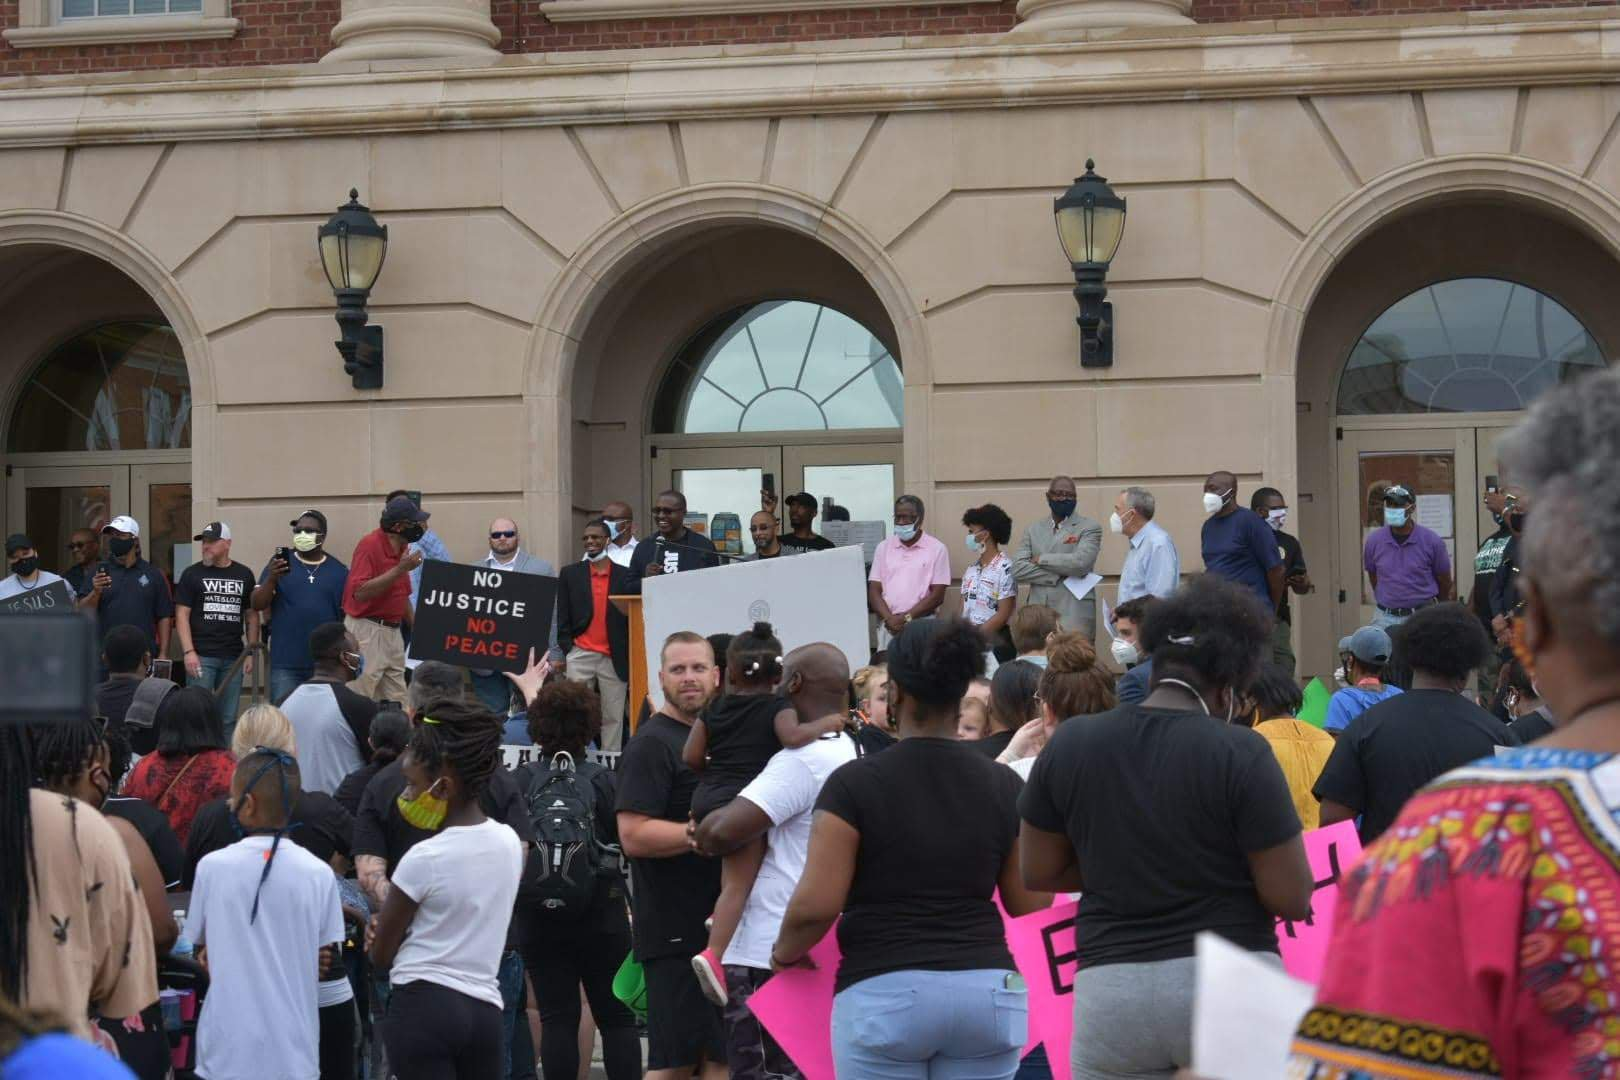 crowd gathers at Justice Center